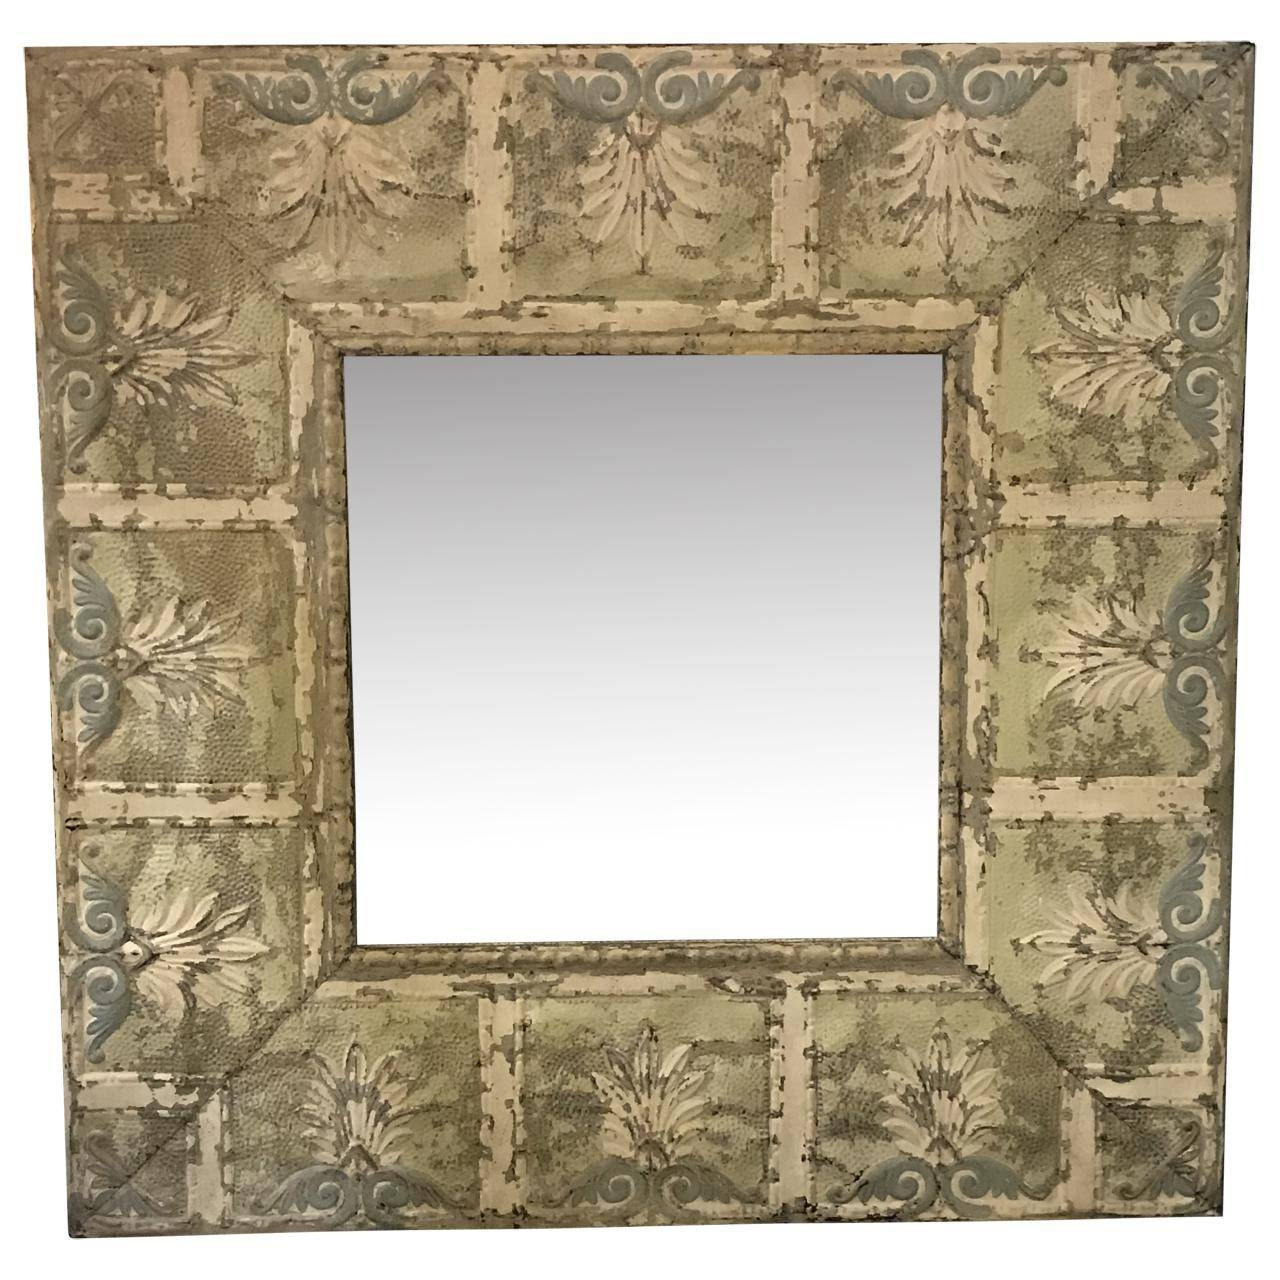 Dalton Bain - Kenny Ball Antiques - Pressed Tin Architectural inside Pressed Tin Mirrors (Image 5 of 25)